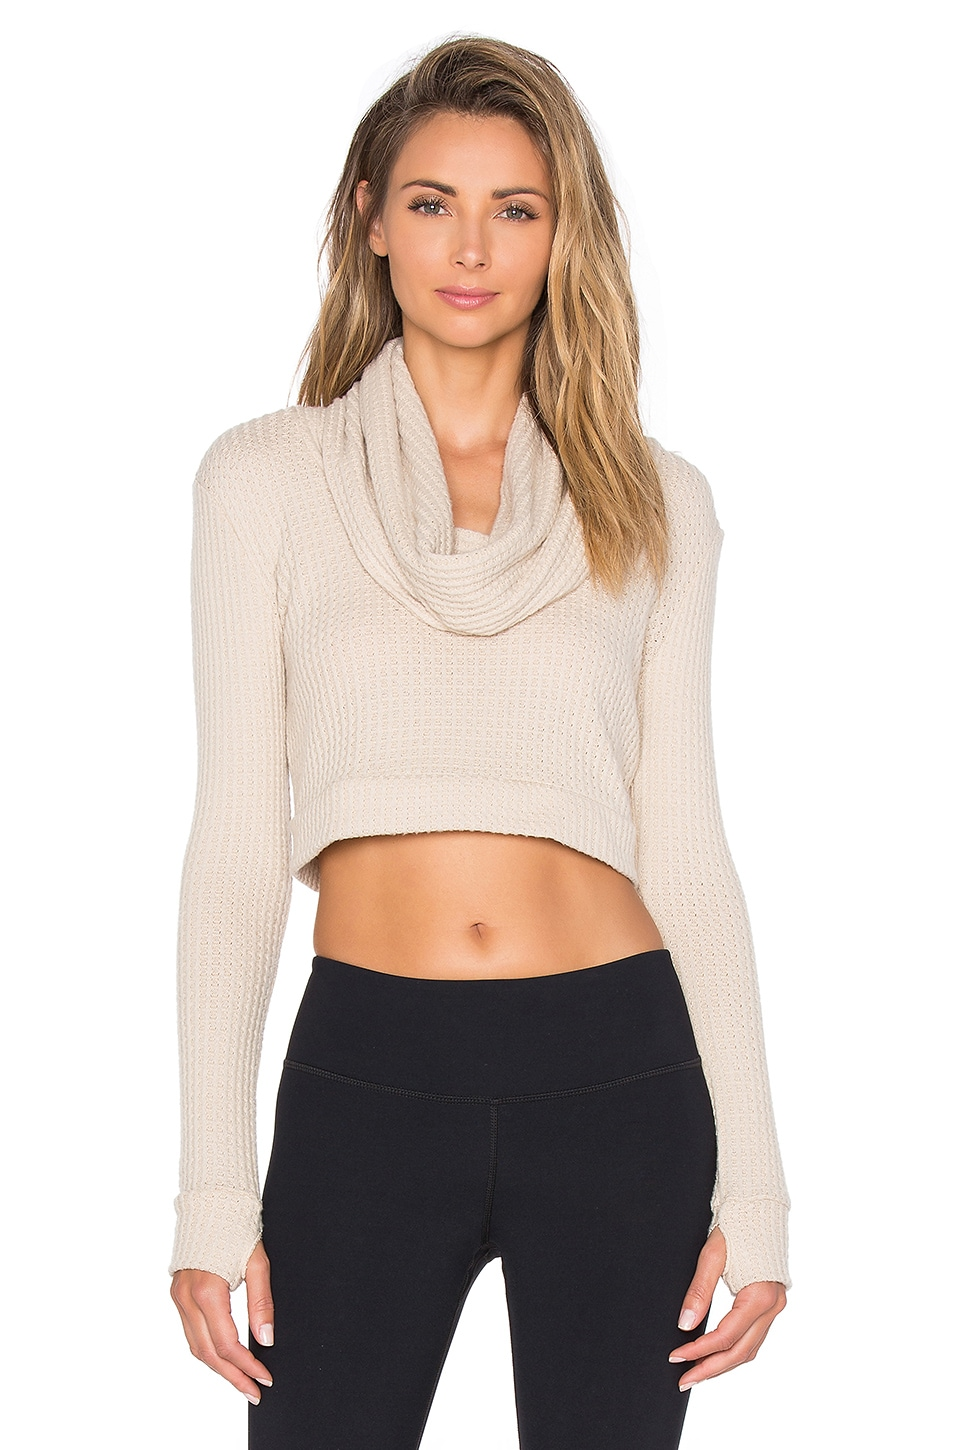 Blue Life Fit Cozy Crop in Oatmeal